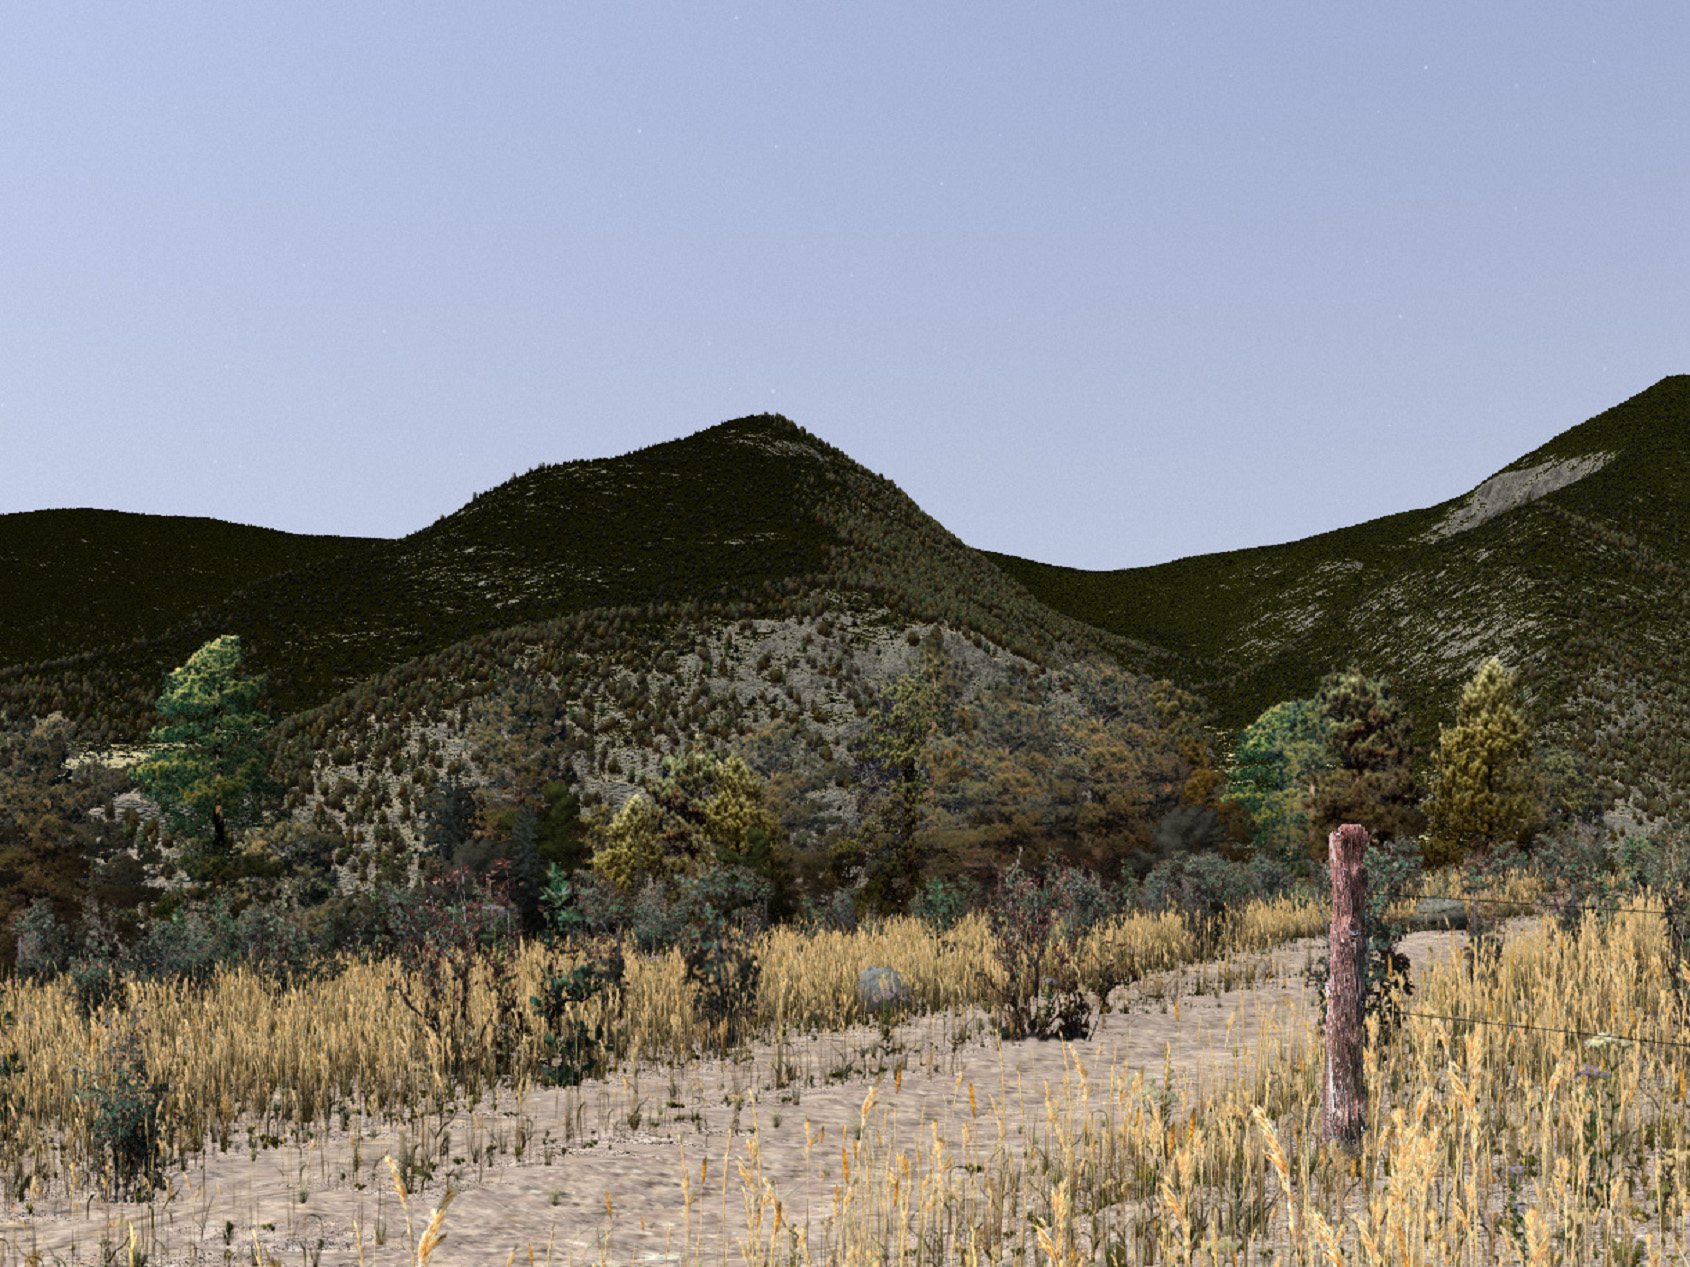 """... and here is another Camera perspective of the """"Horseshoe Park"""", Colorado 3D environmental model in VNS ..."""